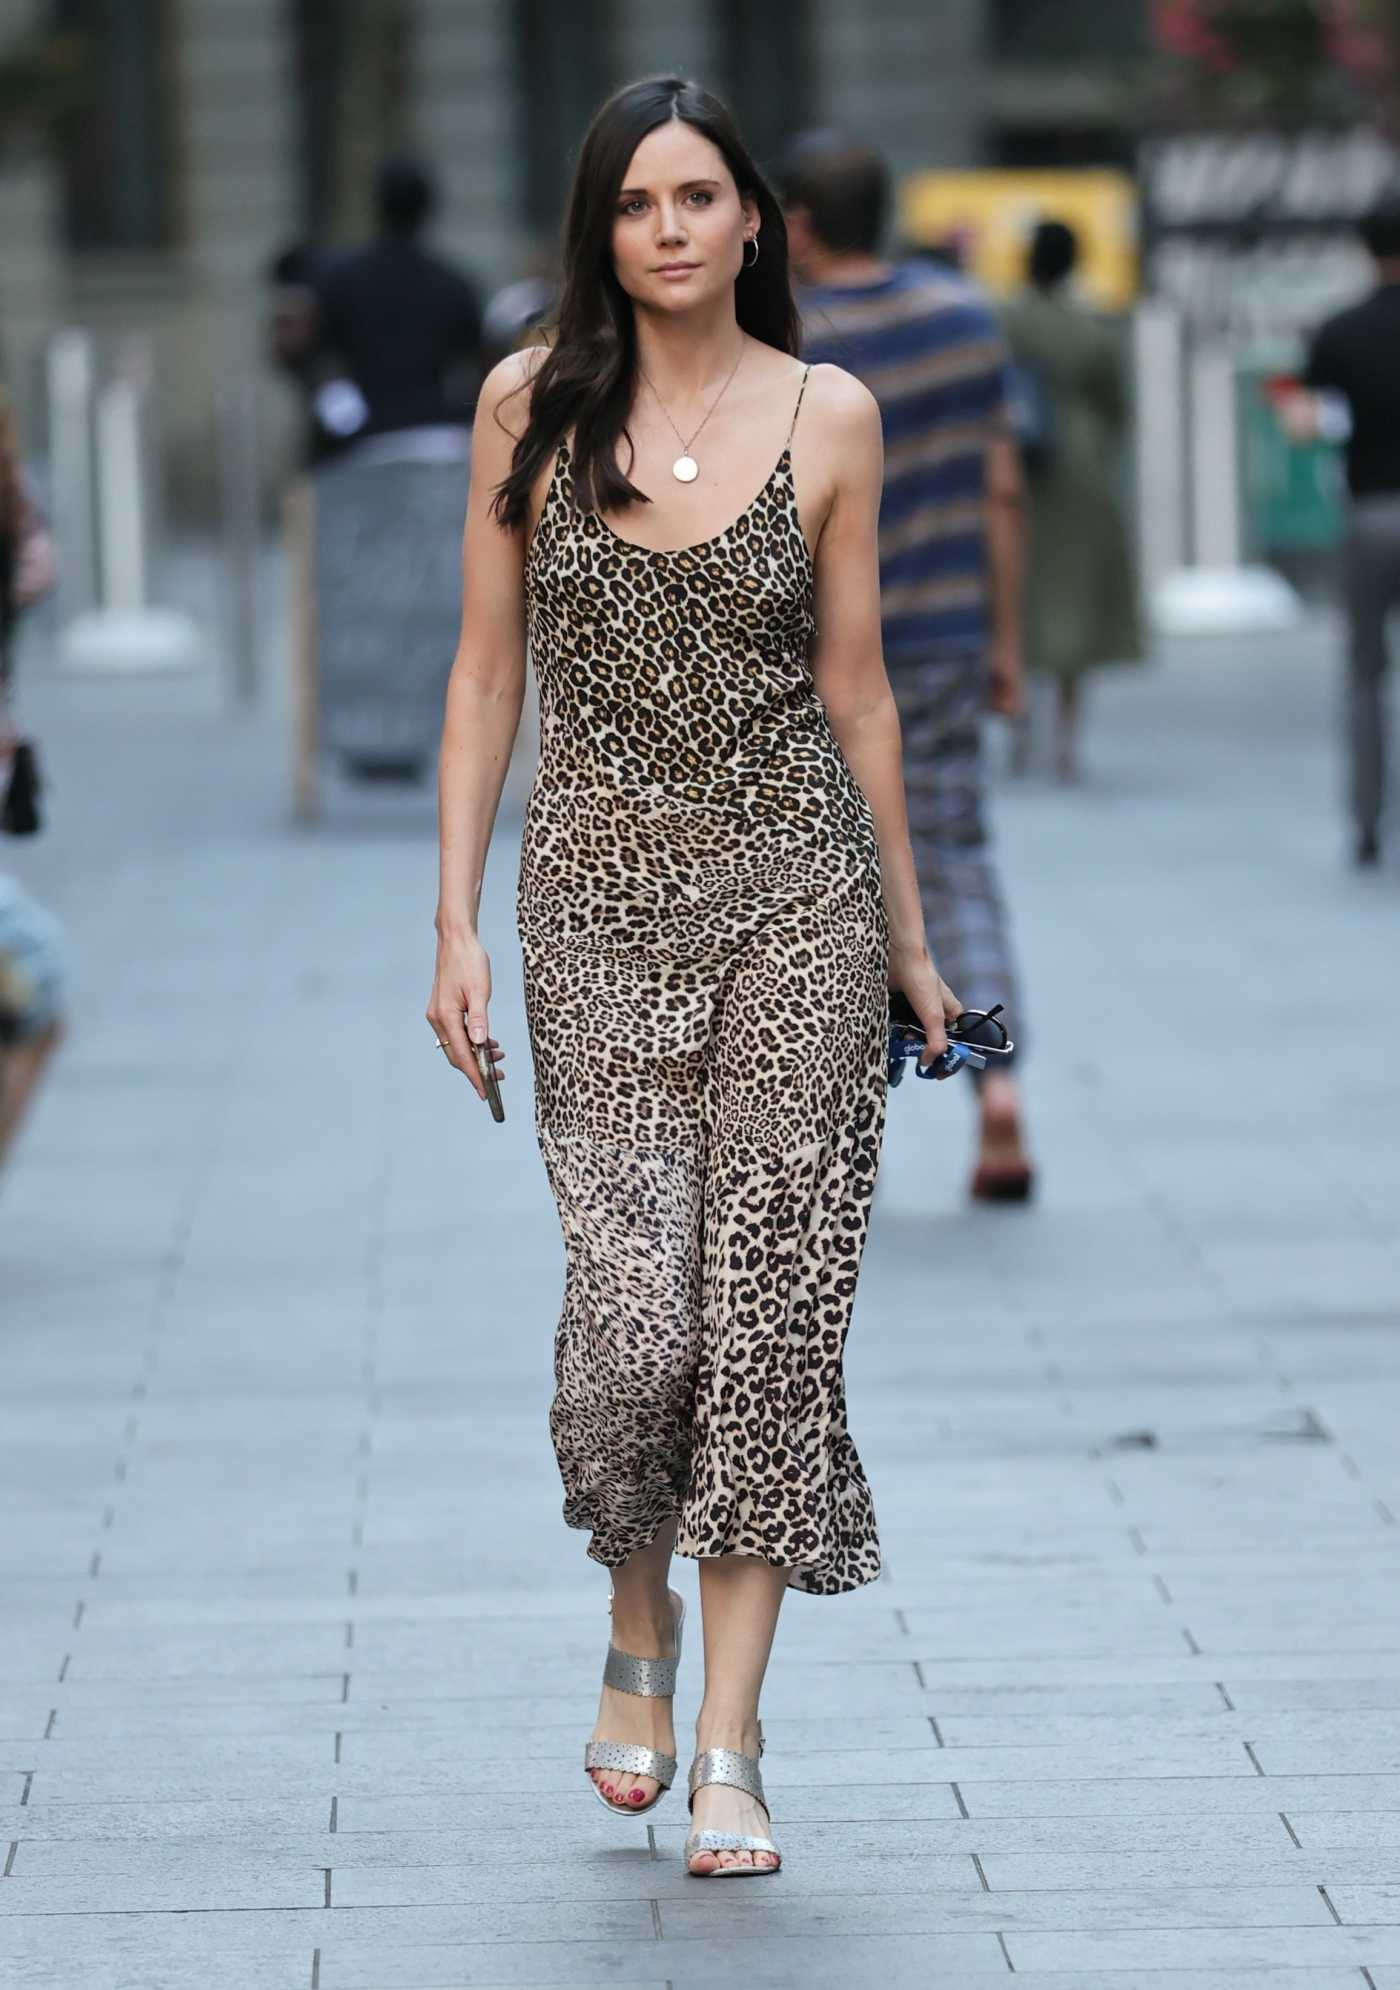 Lilah Parsons in a Leopard Print Dress Arrives at the Heart Radio in London 08/11/2020